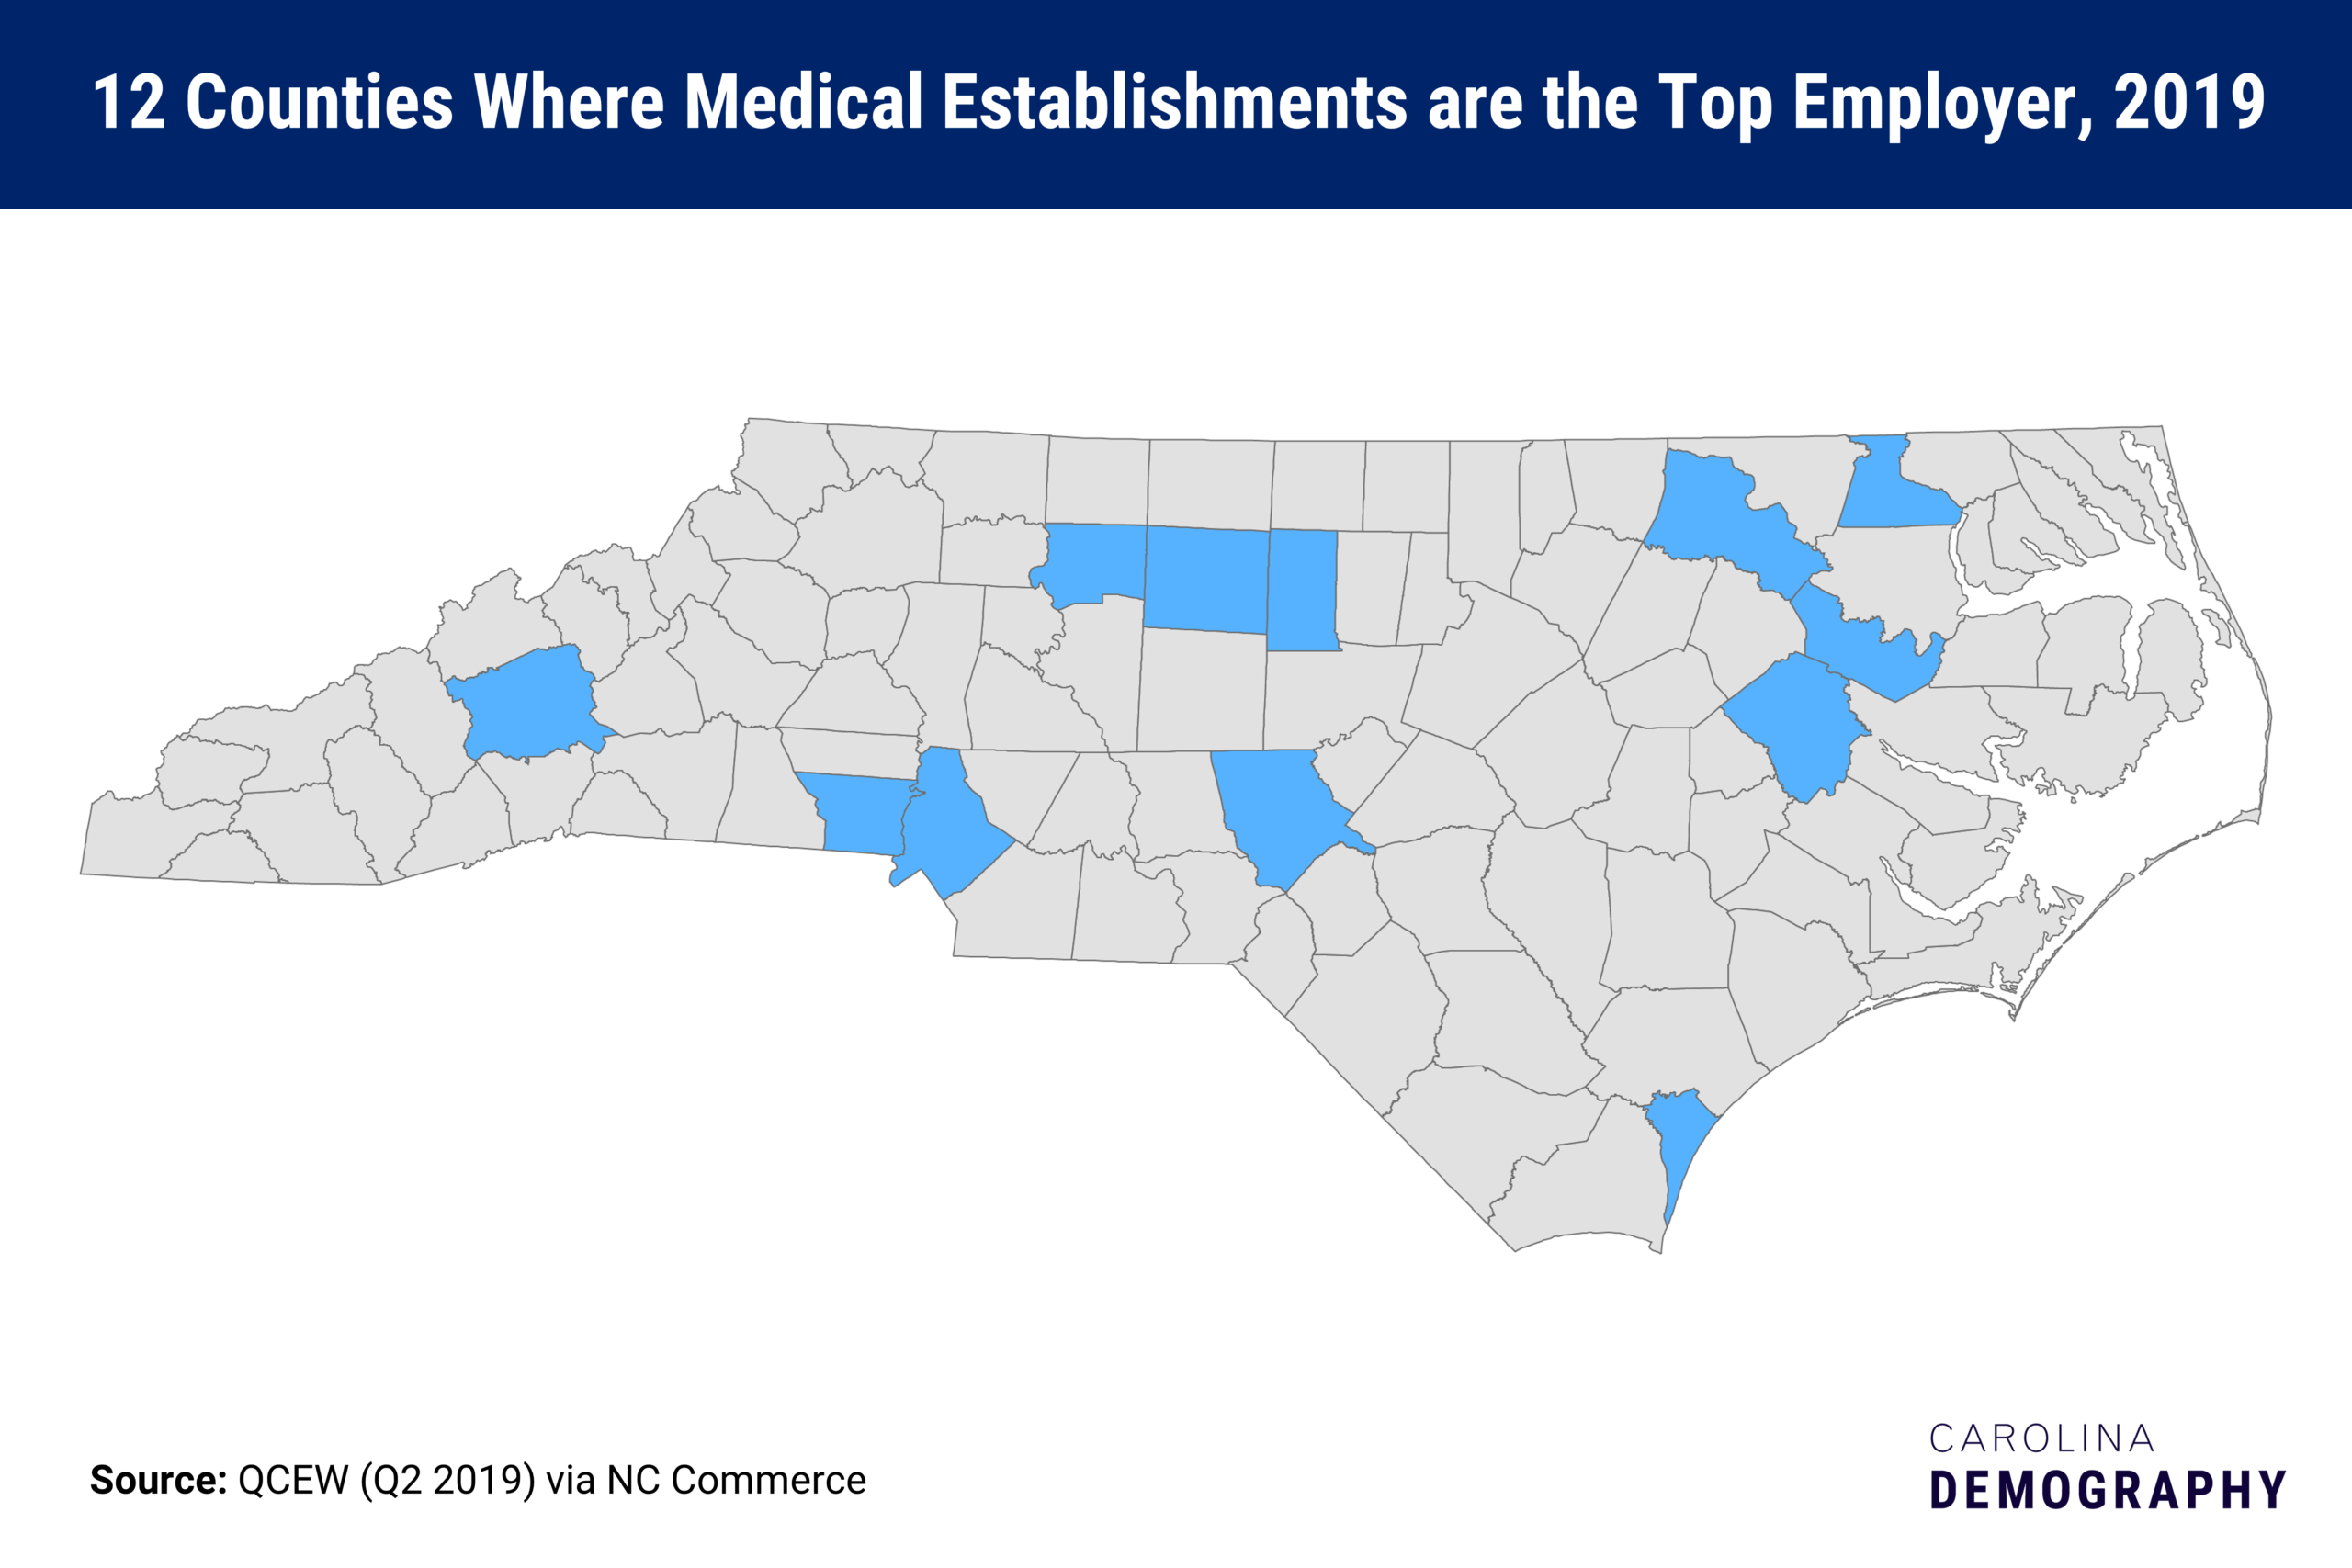 12 counties where medical establishments are the top employer, 2019